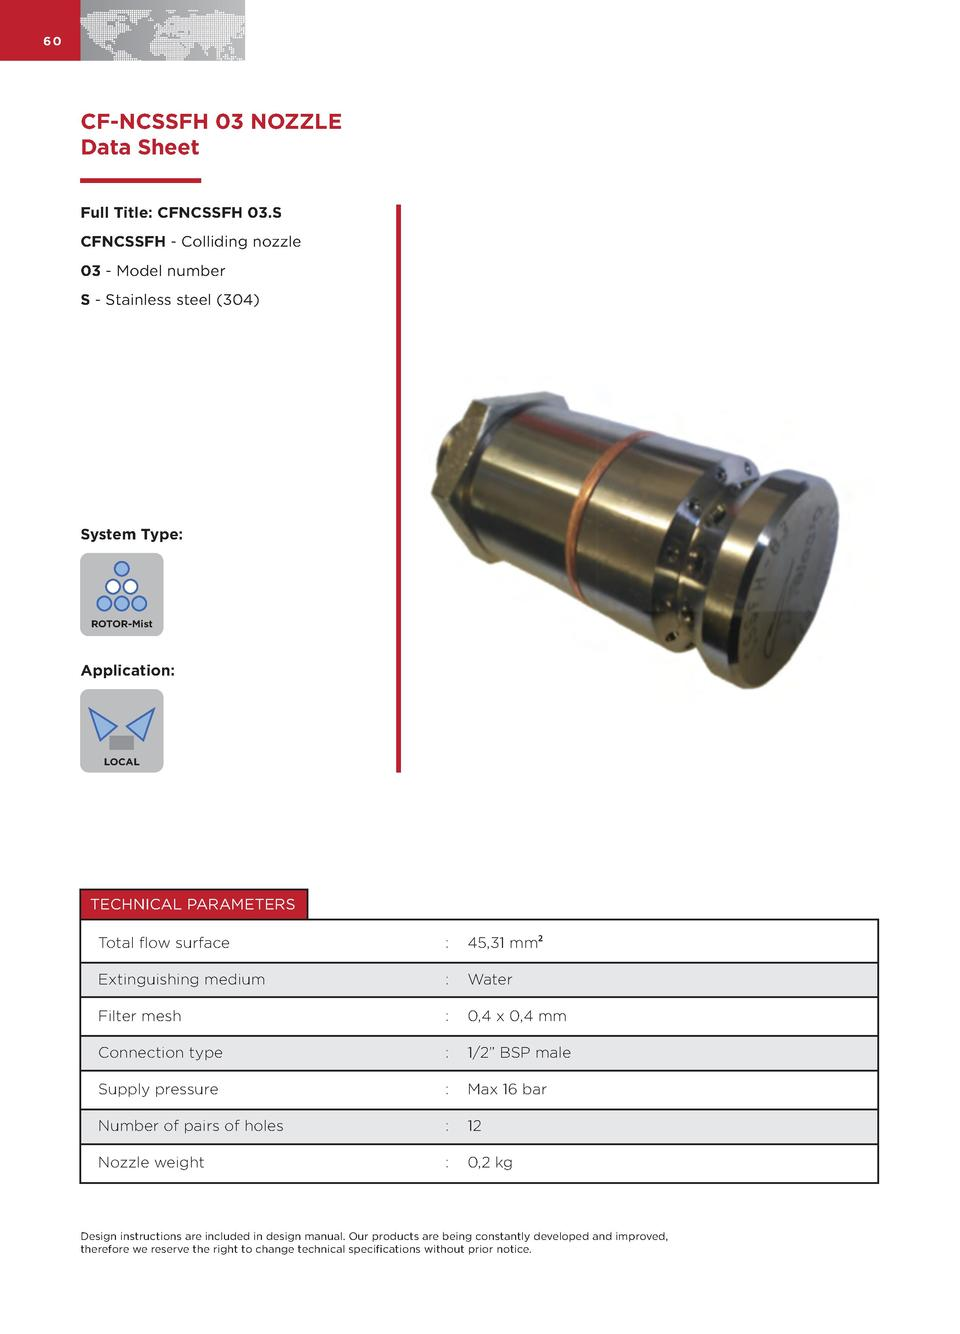 60  CF-NCSSFH 03 NOZZLE Data Sheet Full Title  CFNCSSFH 03.S CFNCSSFH - Colliding nozzle 03 - Model number S - Stainless s...